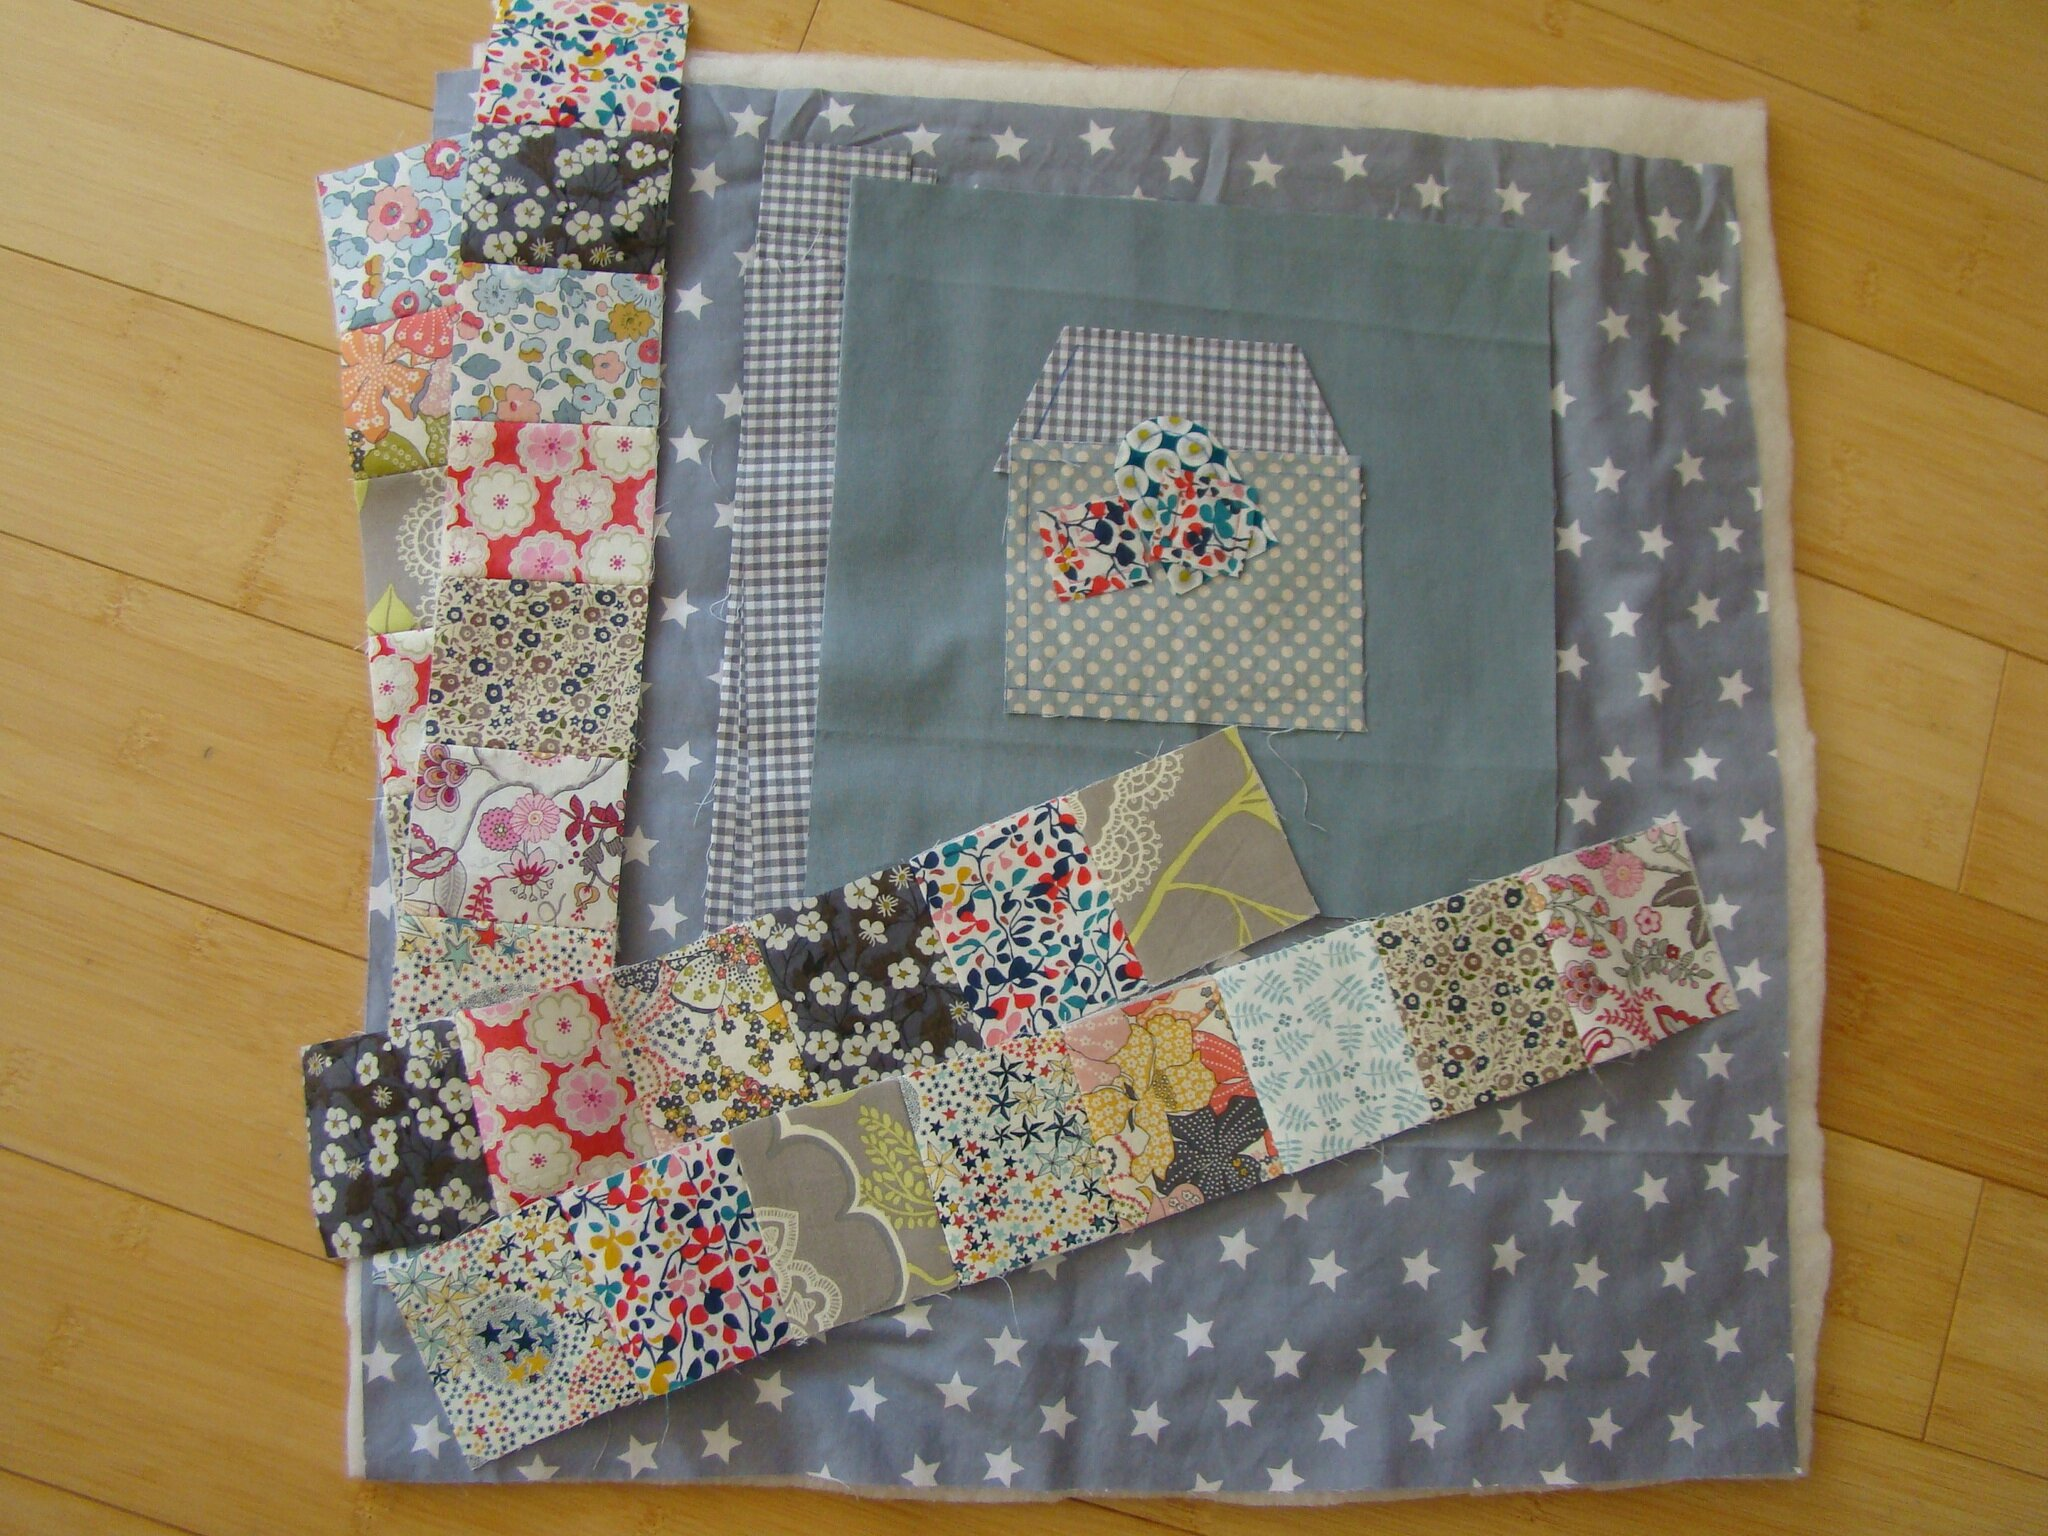 My sweet home mini quilt